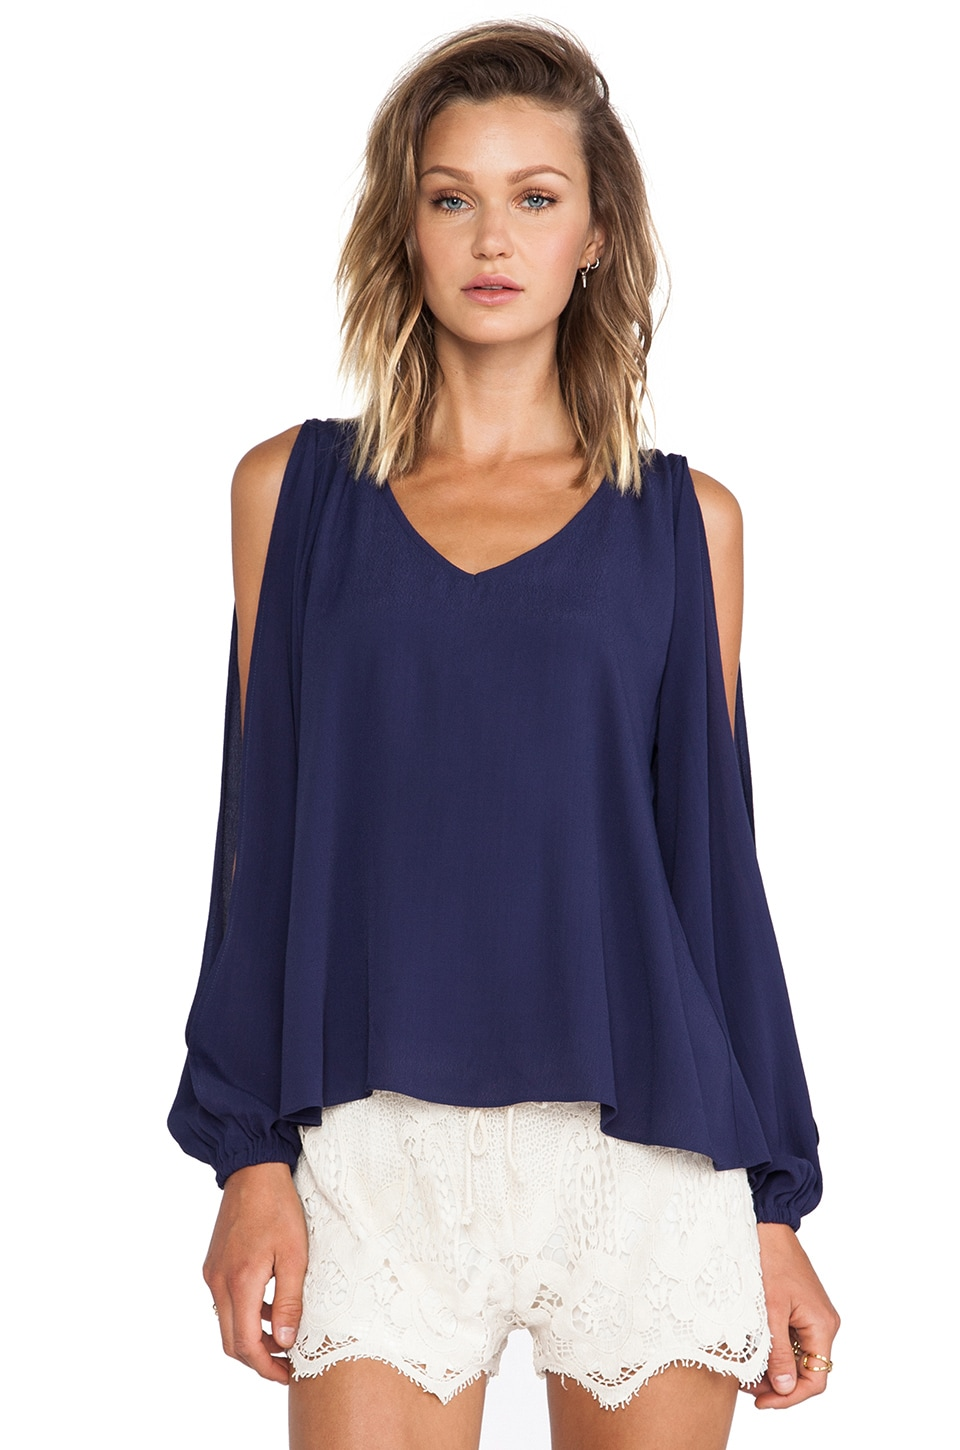 Lovers + Friends Daydream Blouse in Sapphire